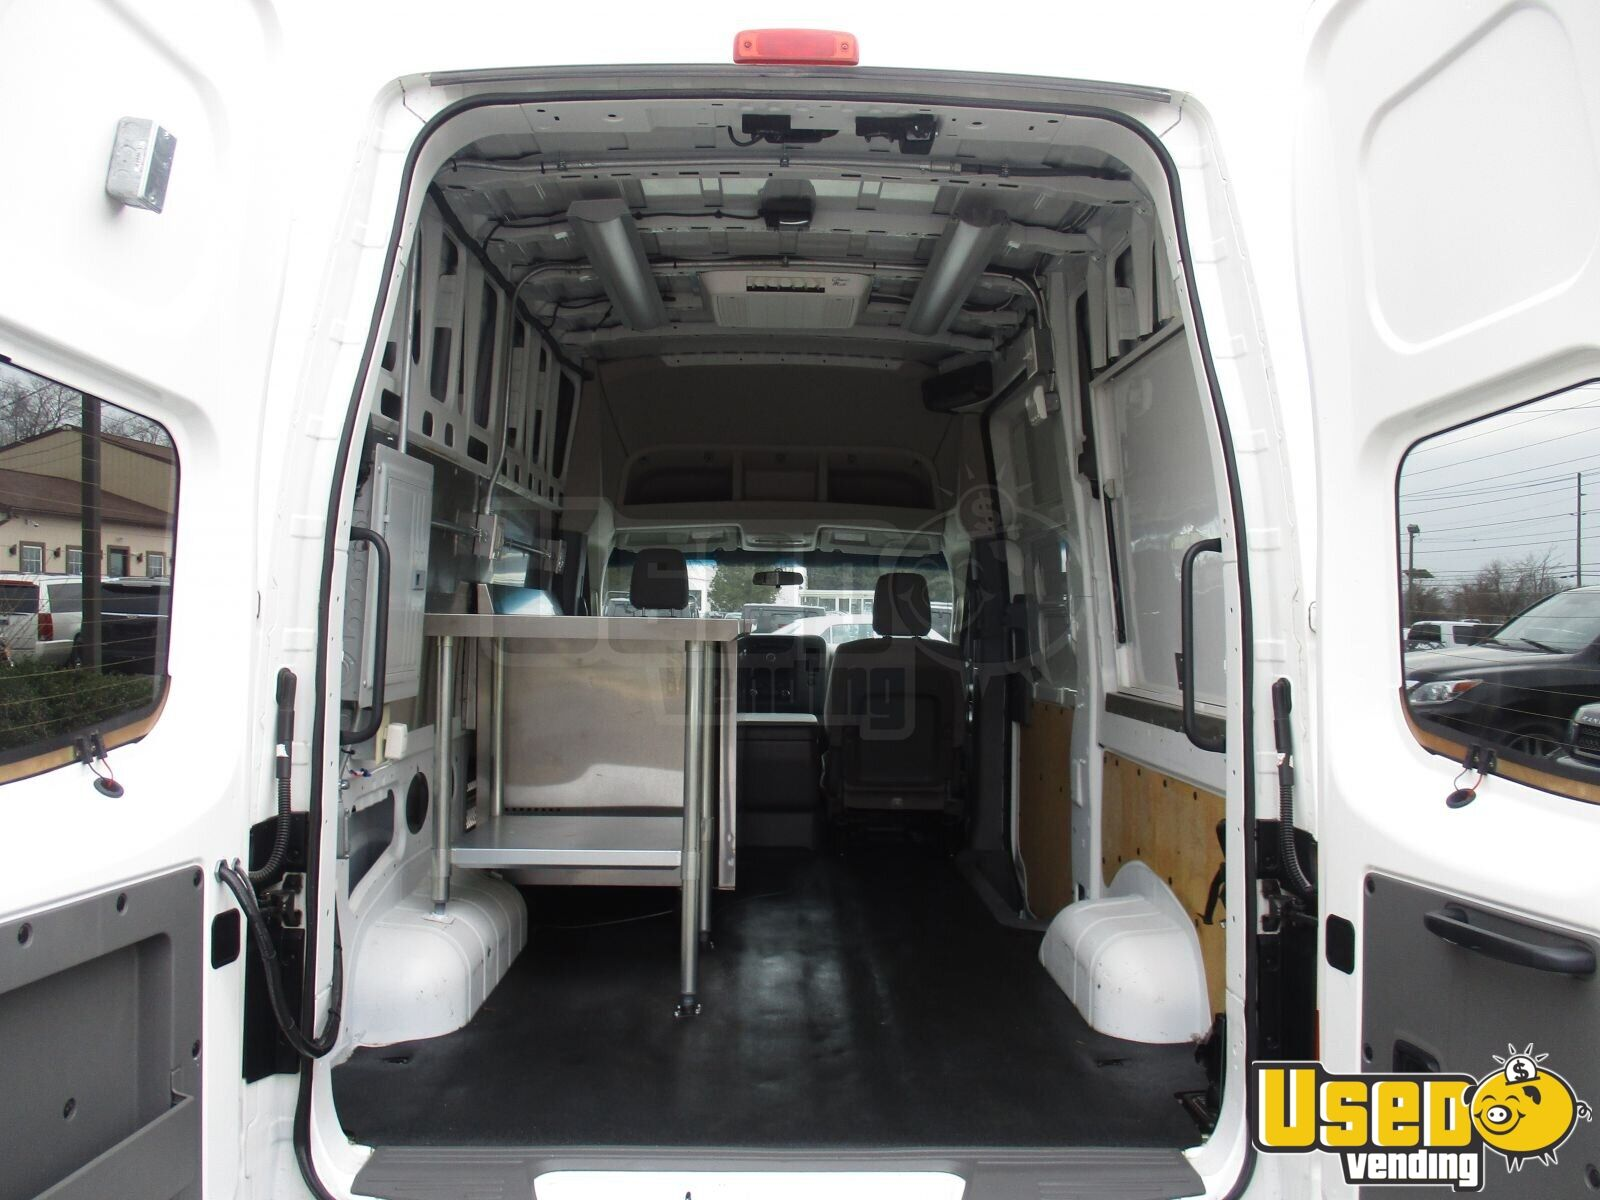 2013 Nissan Nv2500 All-purpose Food Truck 17 New Jersey Gas Engine for Sale - 17